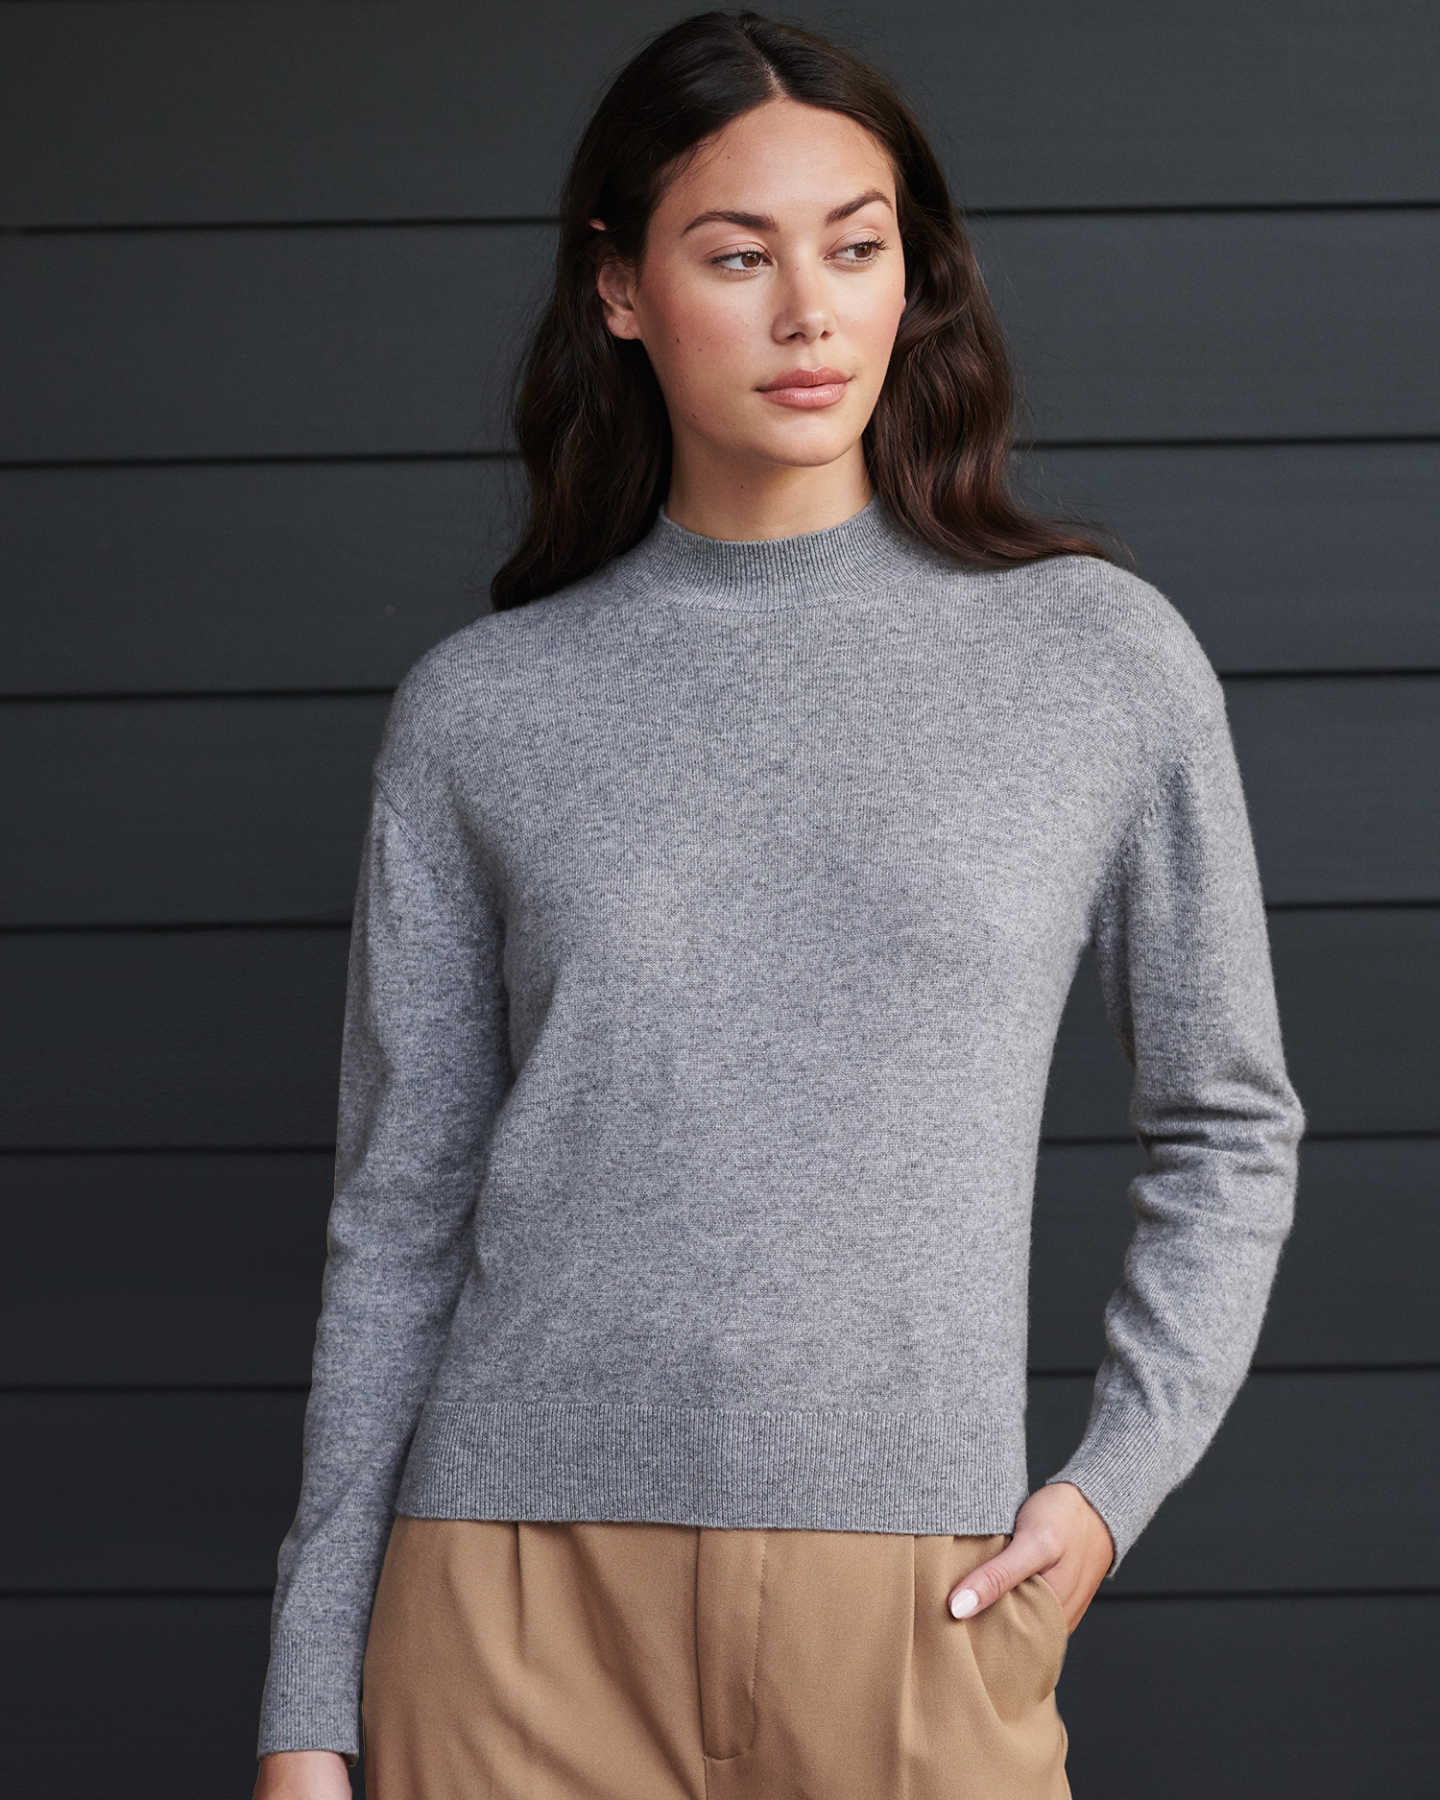 Woman wearing grey cashmere mockneck sweater looking to the side